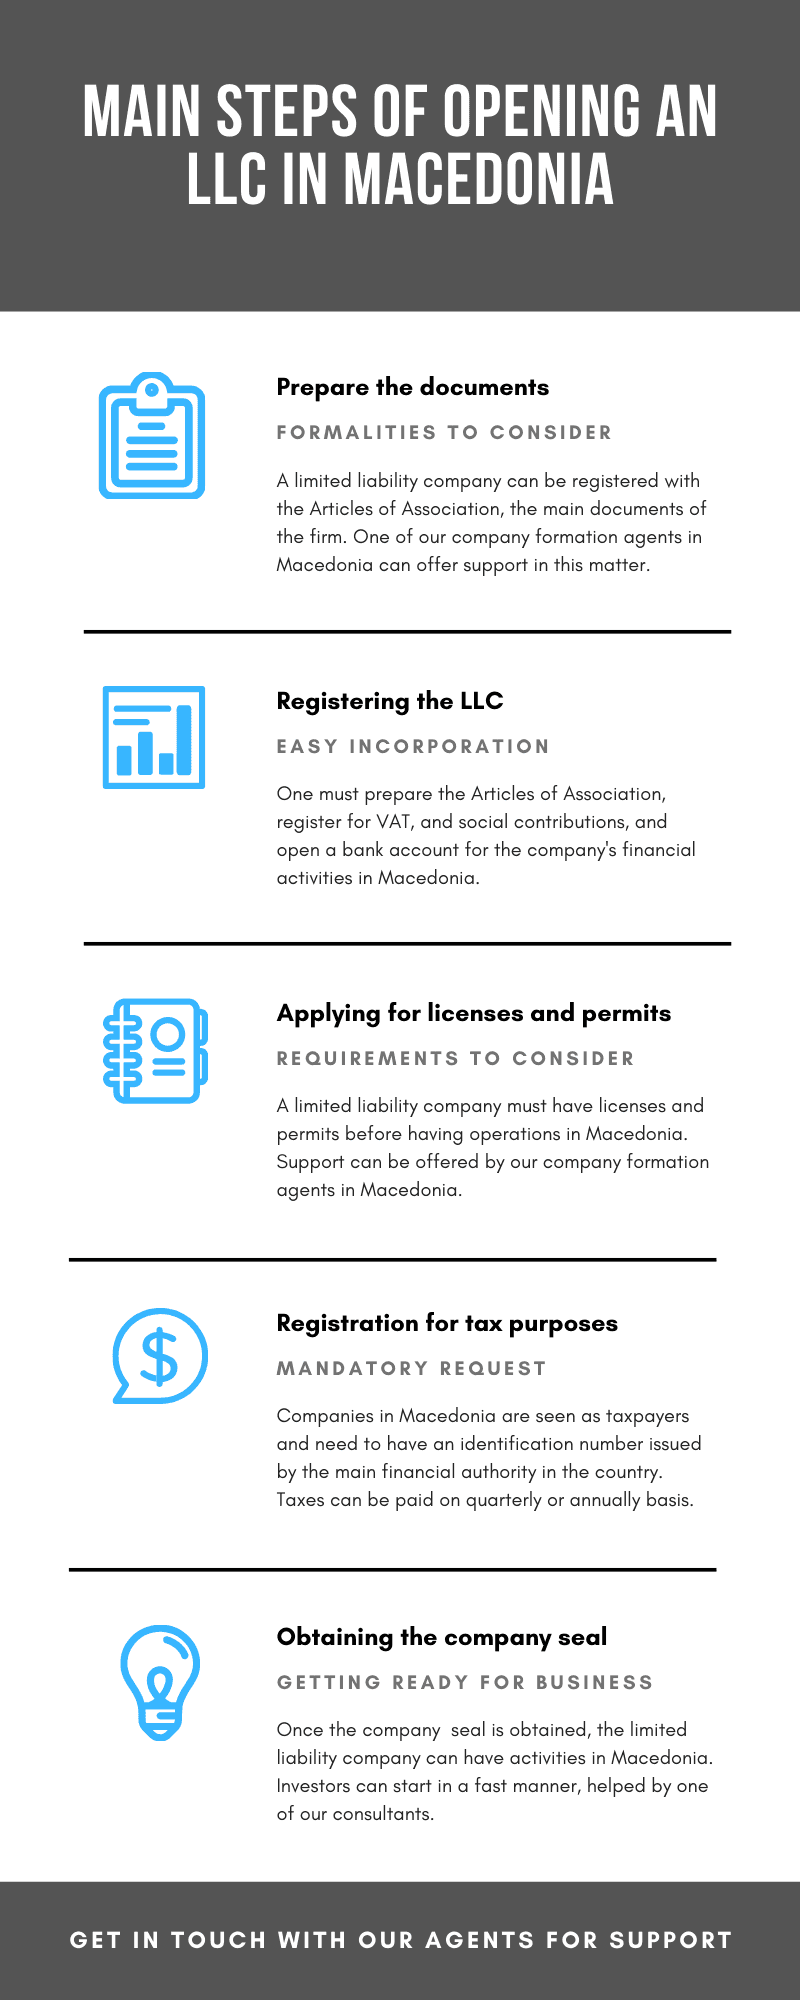 Main-steps-of-opening-an-LLC-in-Macedonia.png